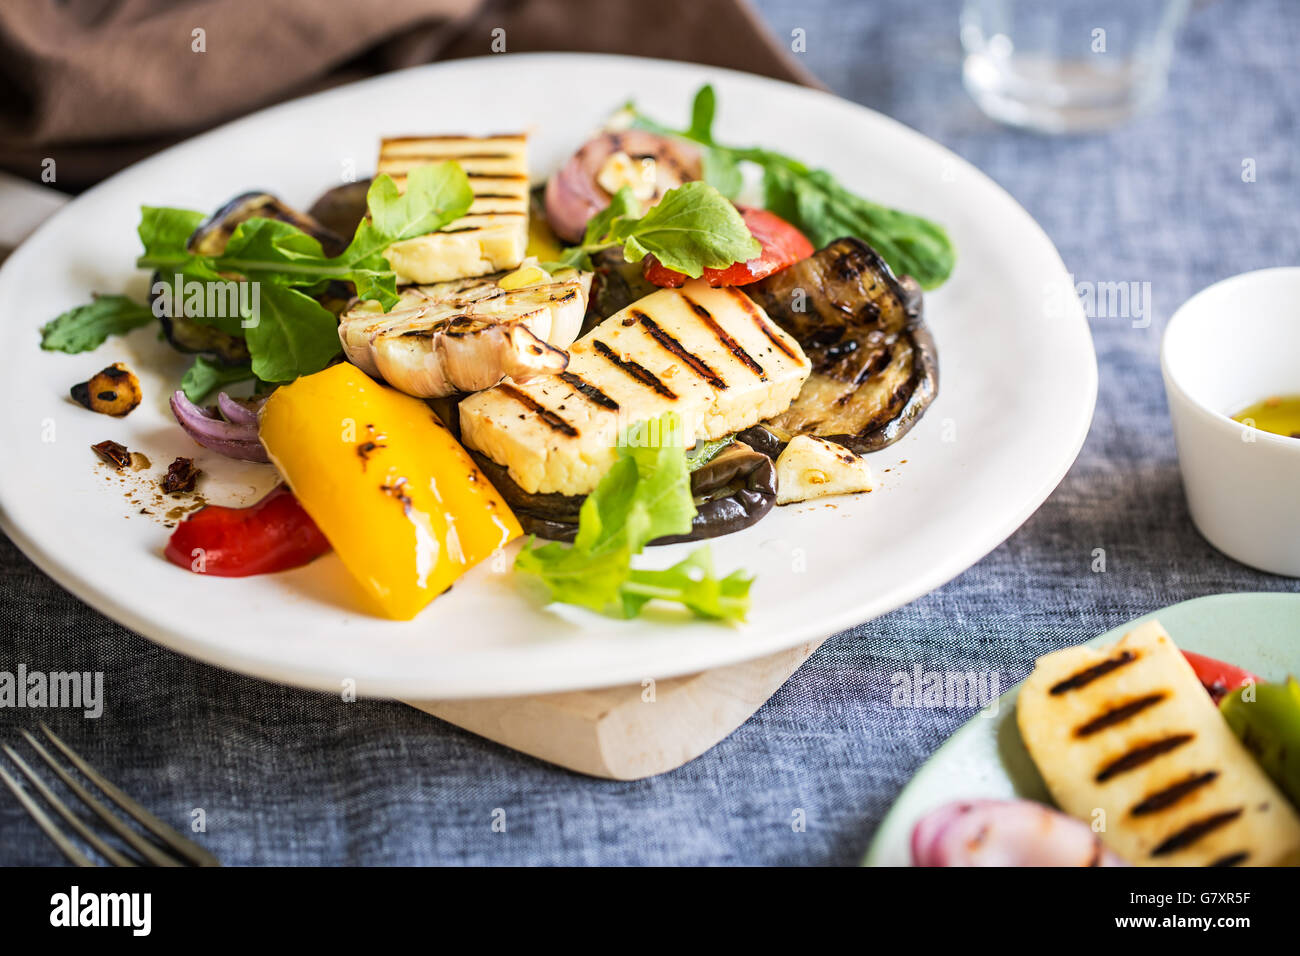 Grilled Halloumi with aubergine,pepper garlic and rocket salad - Stock Image